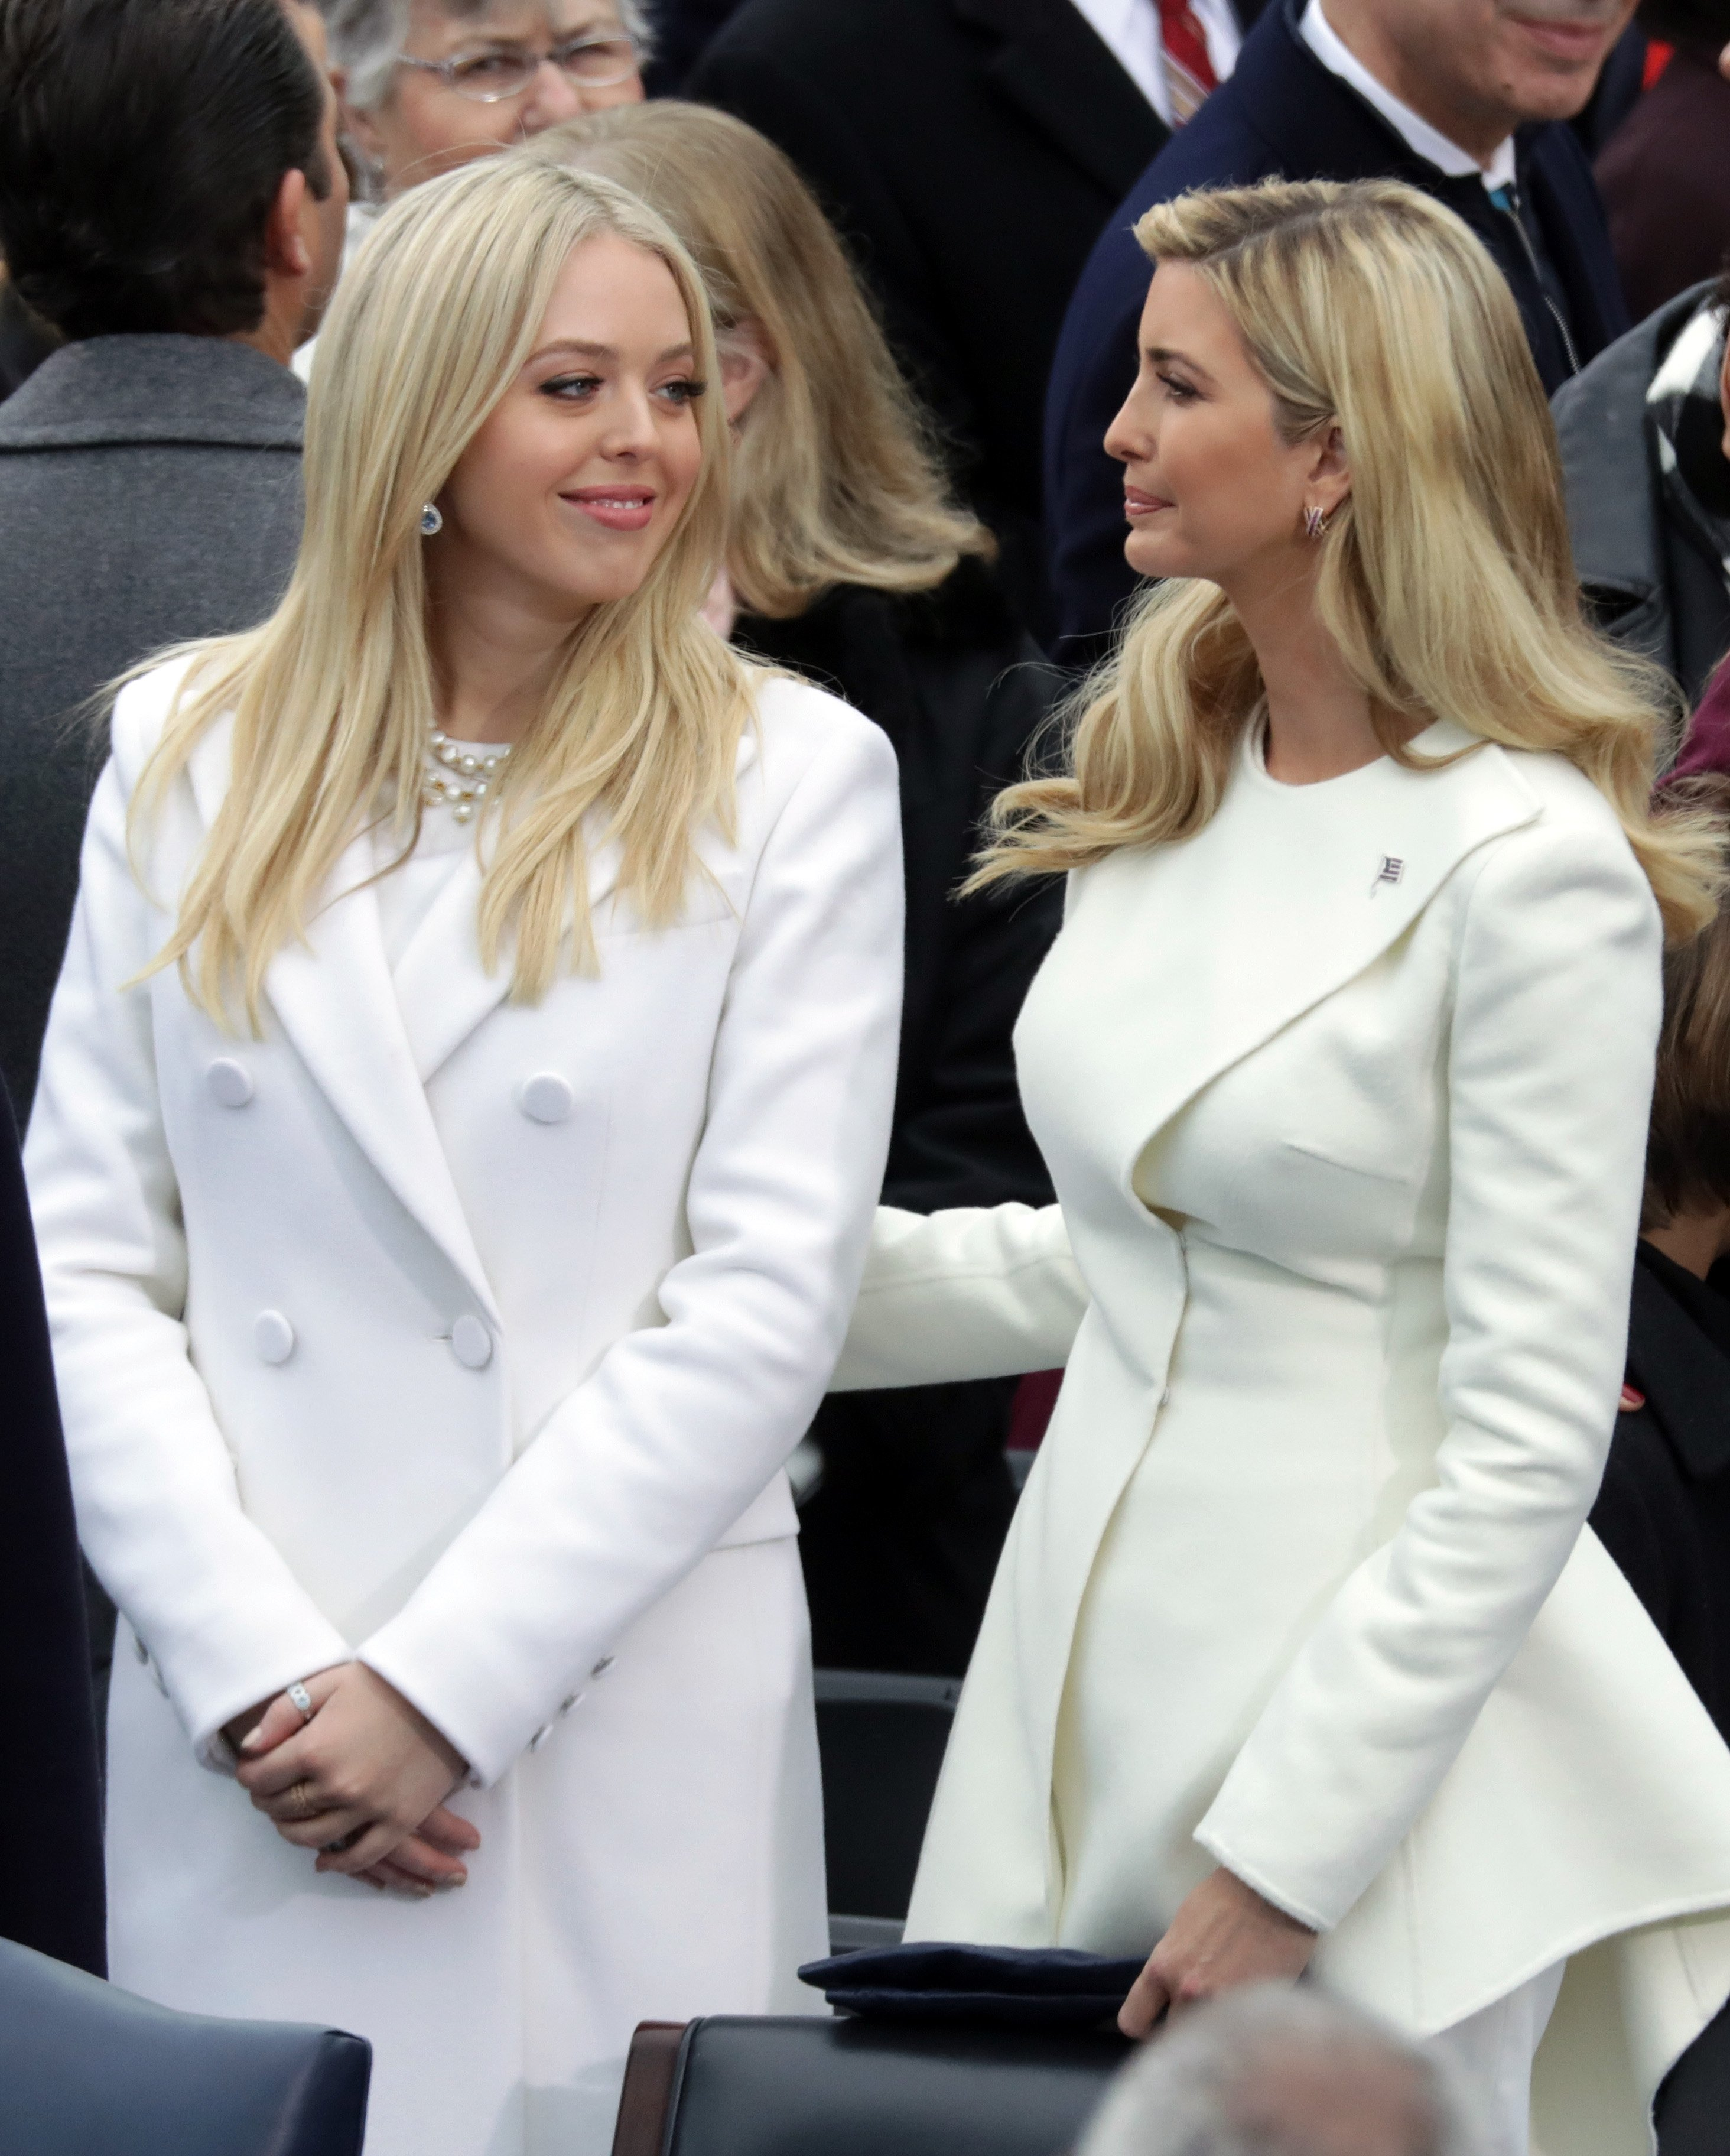 Tiffany Trump and Ivanka Trump arrive on the West Front of the U.S. Capitol on January 20, 2017 in Washington, DC